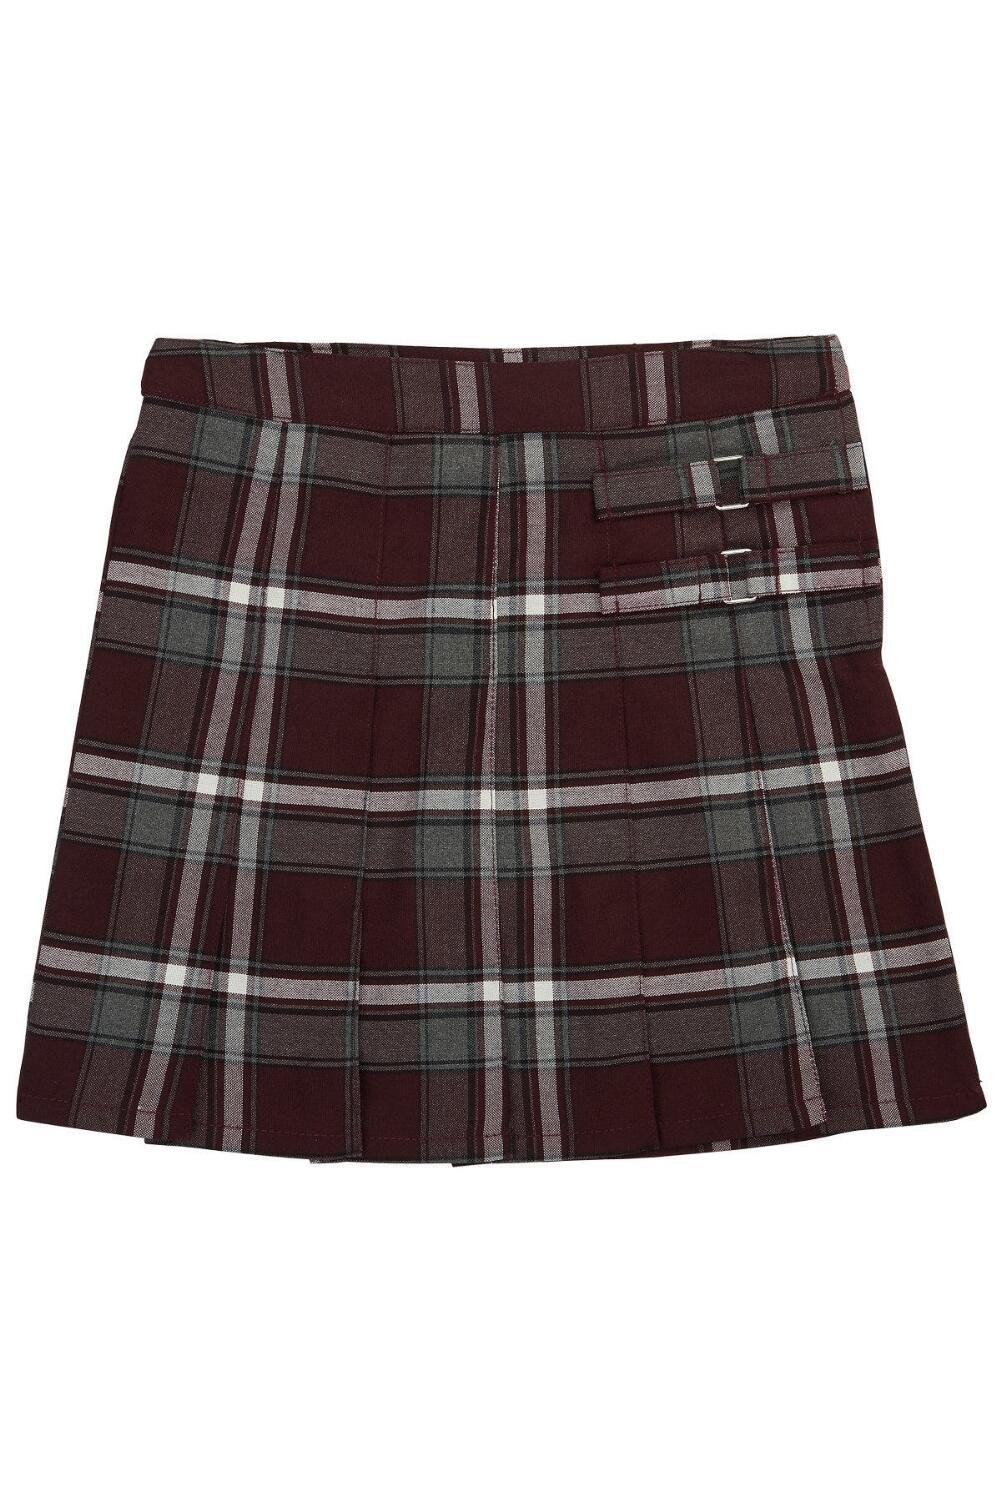 French Toast Little Girls' Plaid Pleated Scooter, Burgundy Plaid, 6